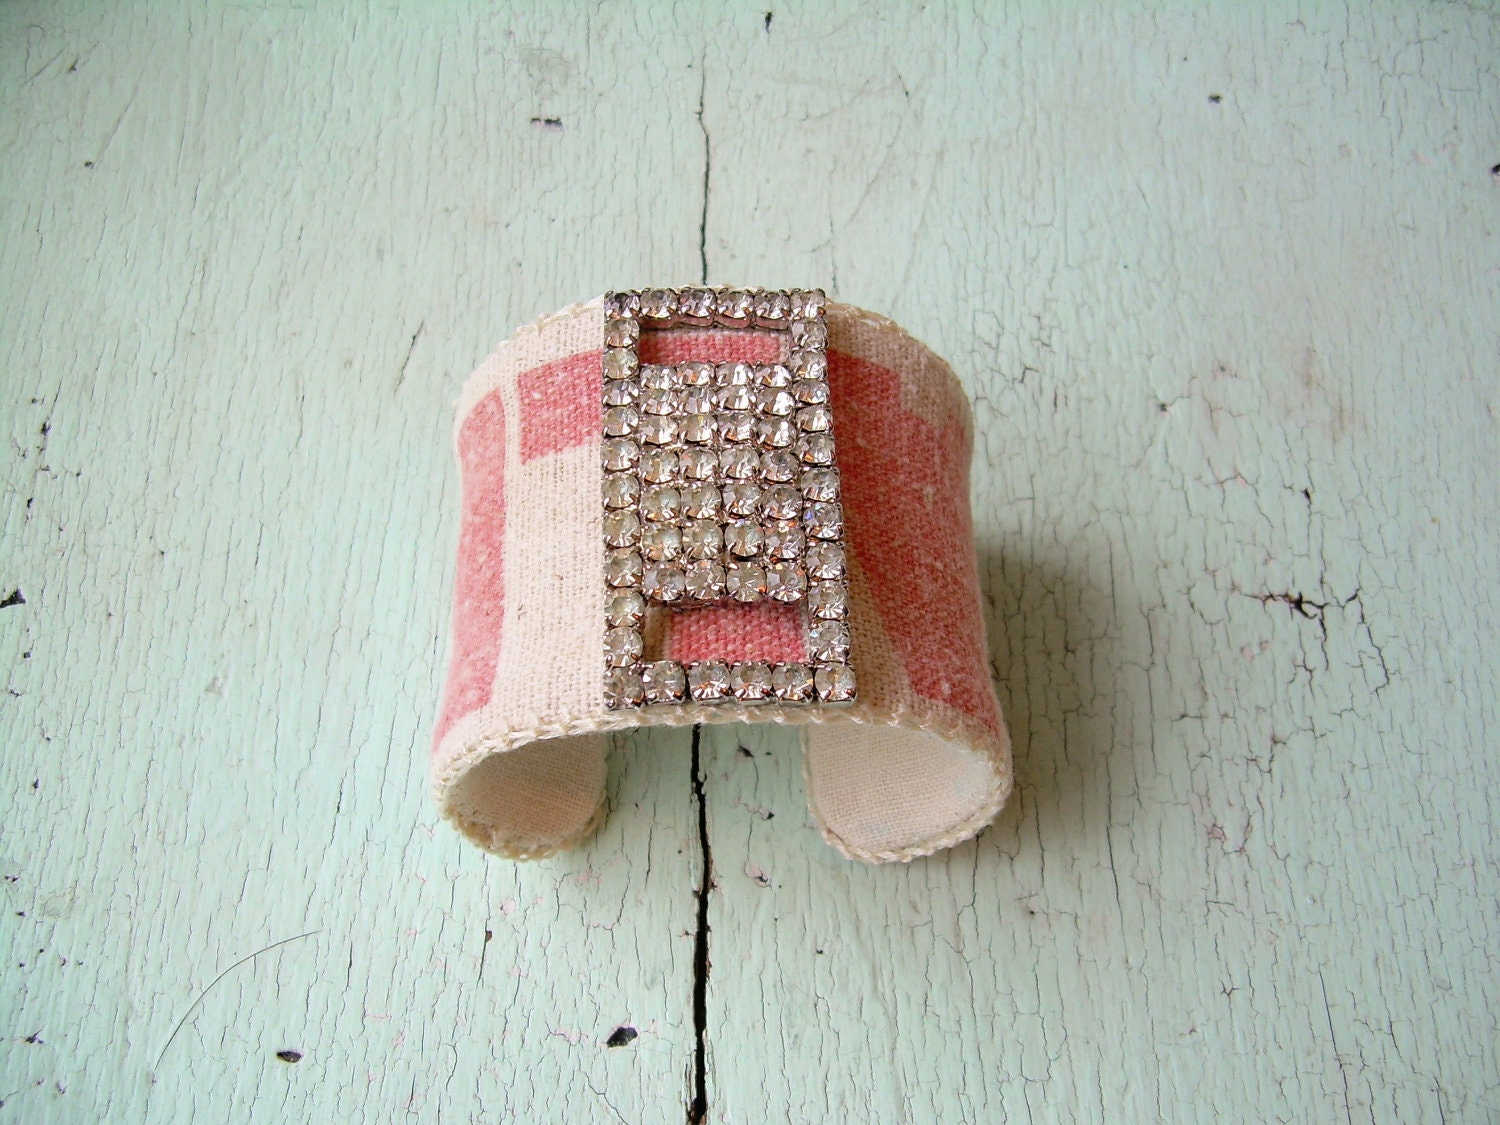 Grain Sack and Rhinestone Cuff Bracelet